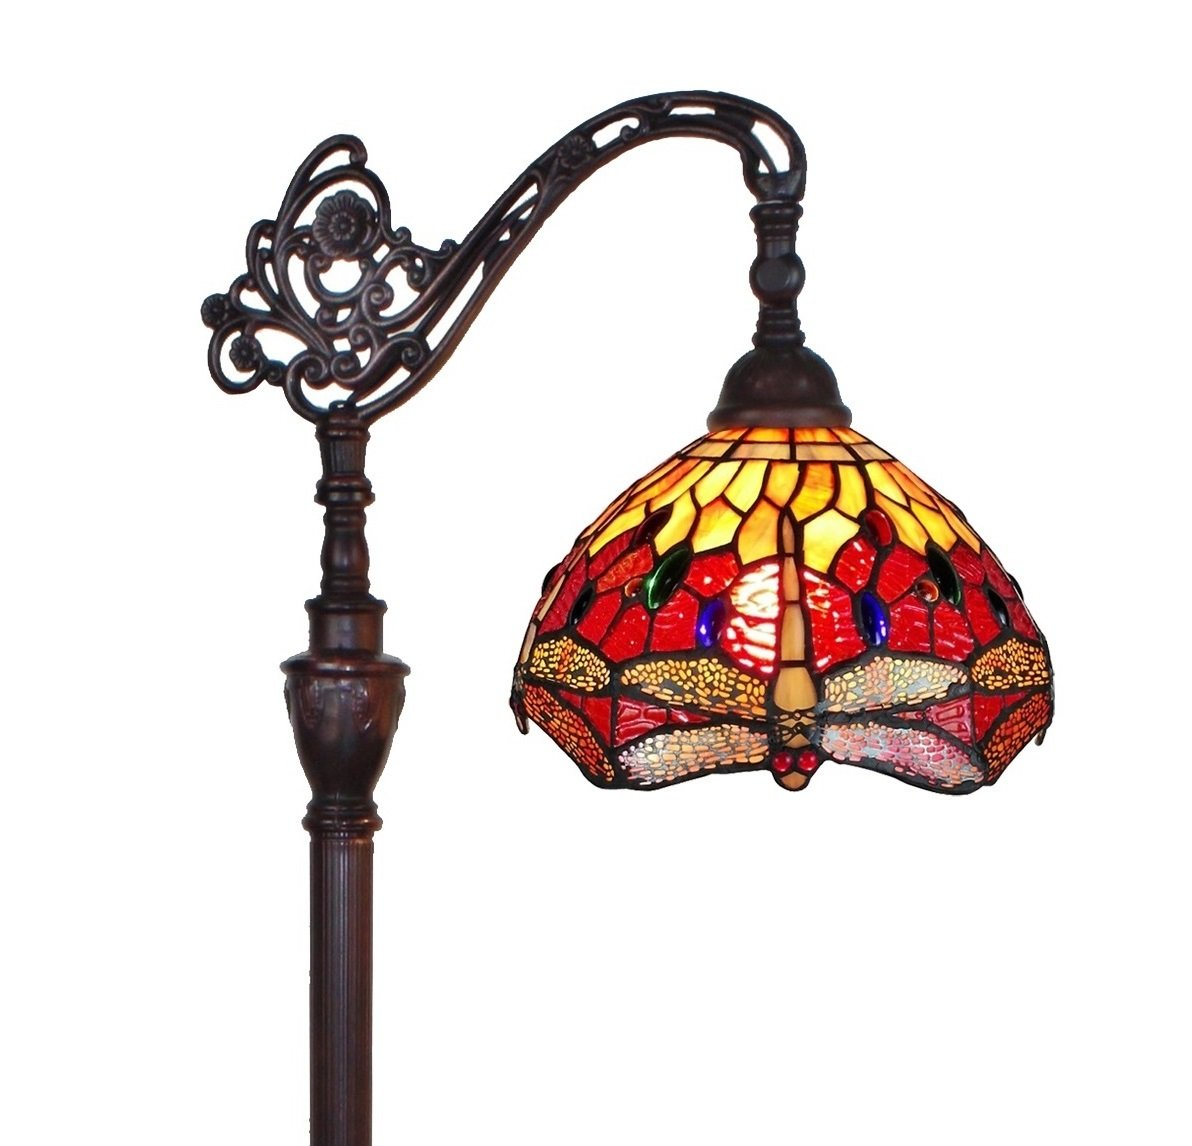 p lighting style lamps adjustable in amora lamp shade with floor tiffany